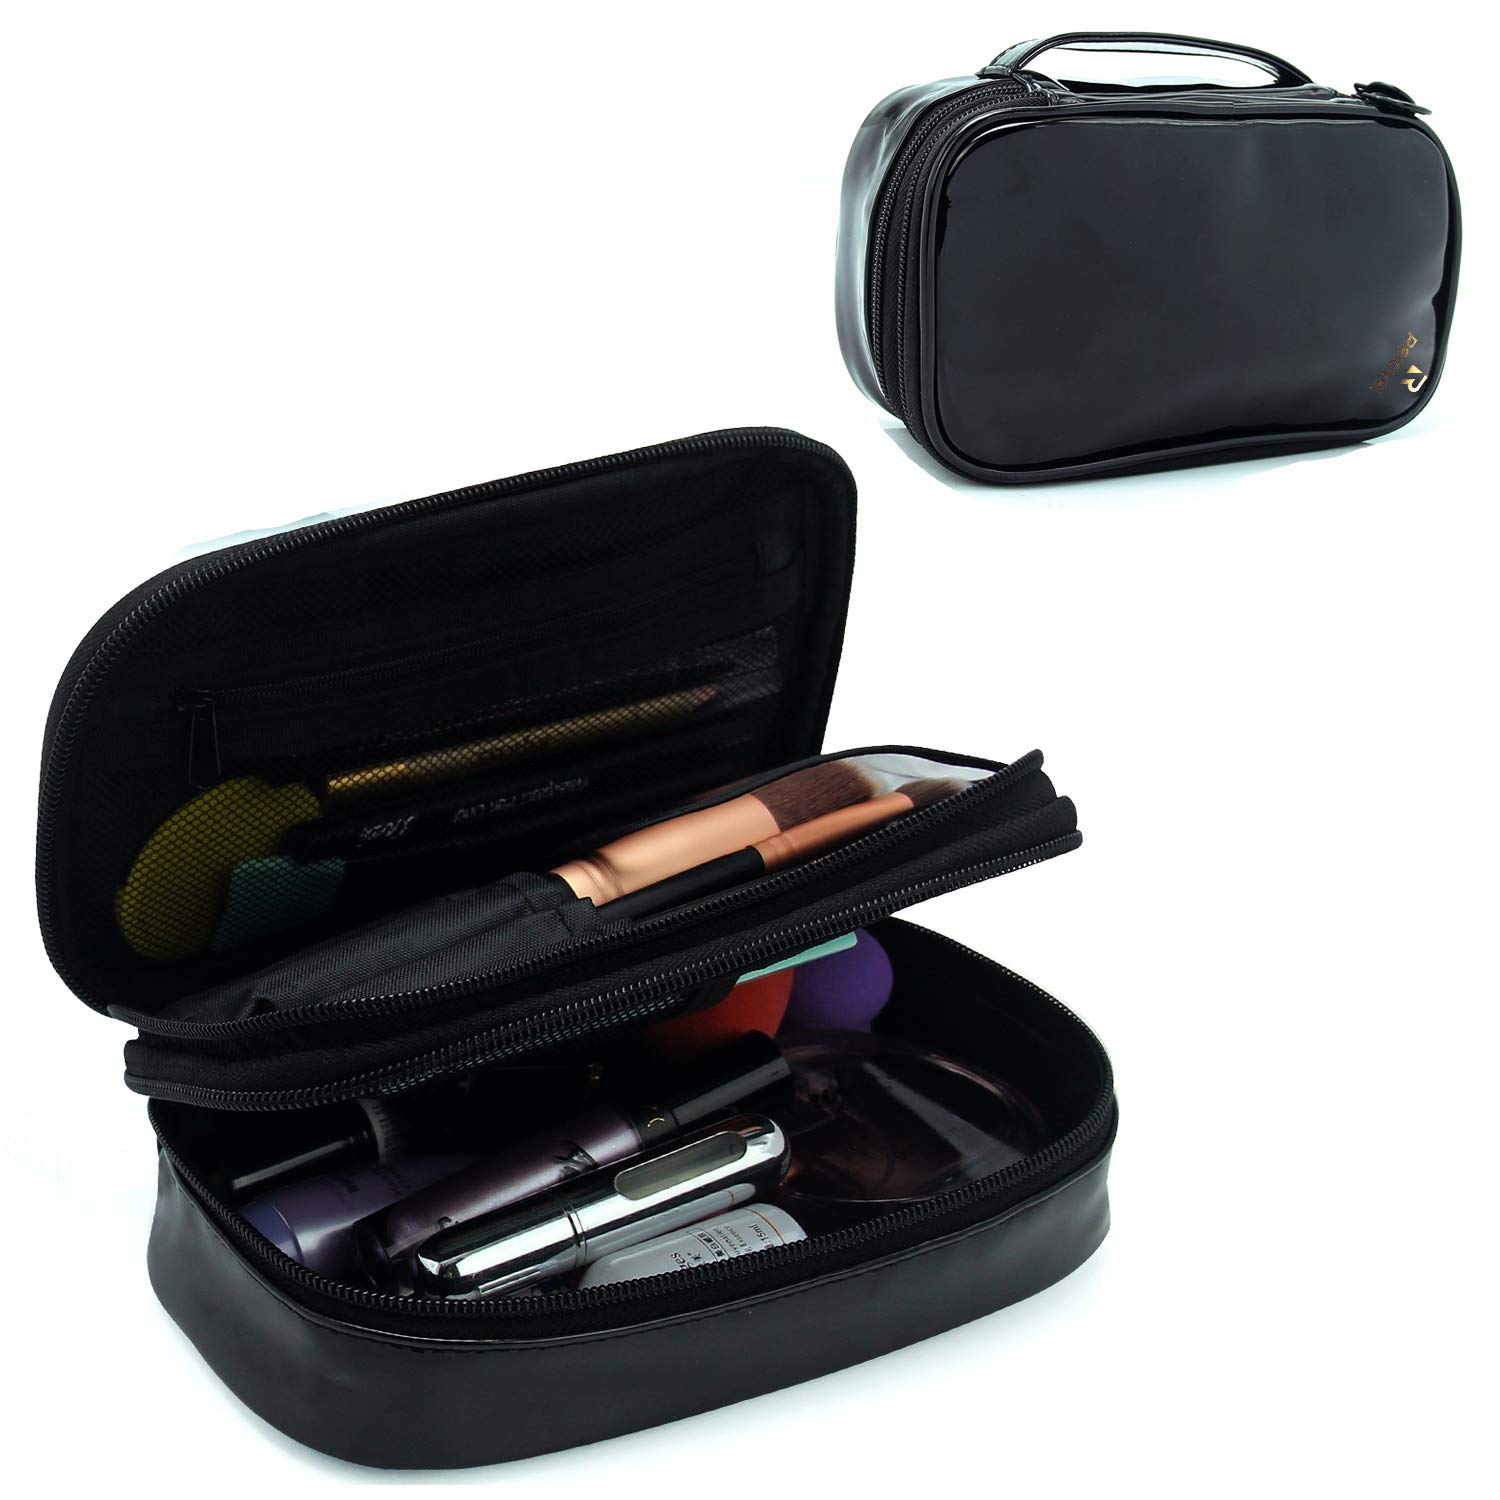 Relavel Small Makeup Bag, Relavel Travel Cosmetic Bag Makeup Brush Organizer Holder for Women Girls Black